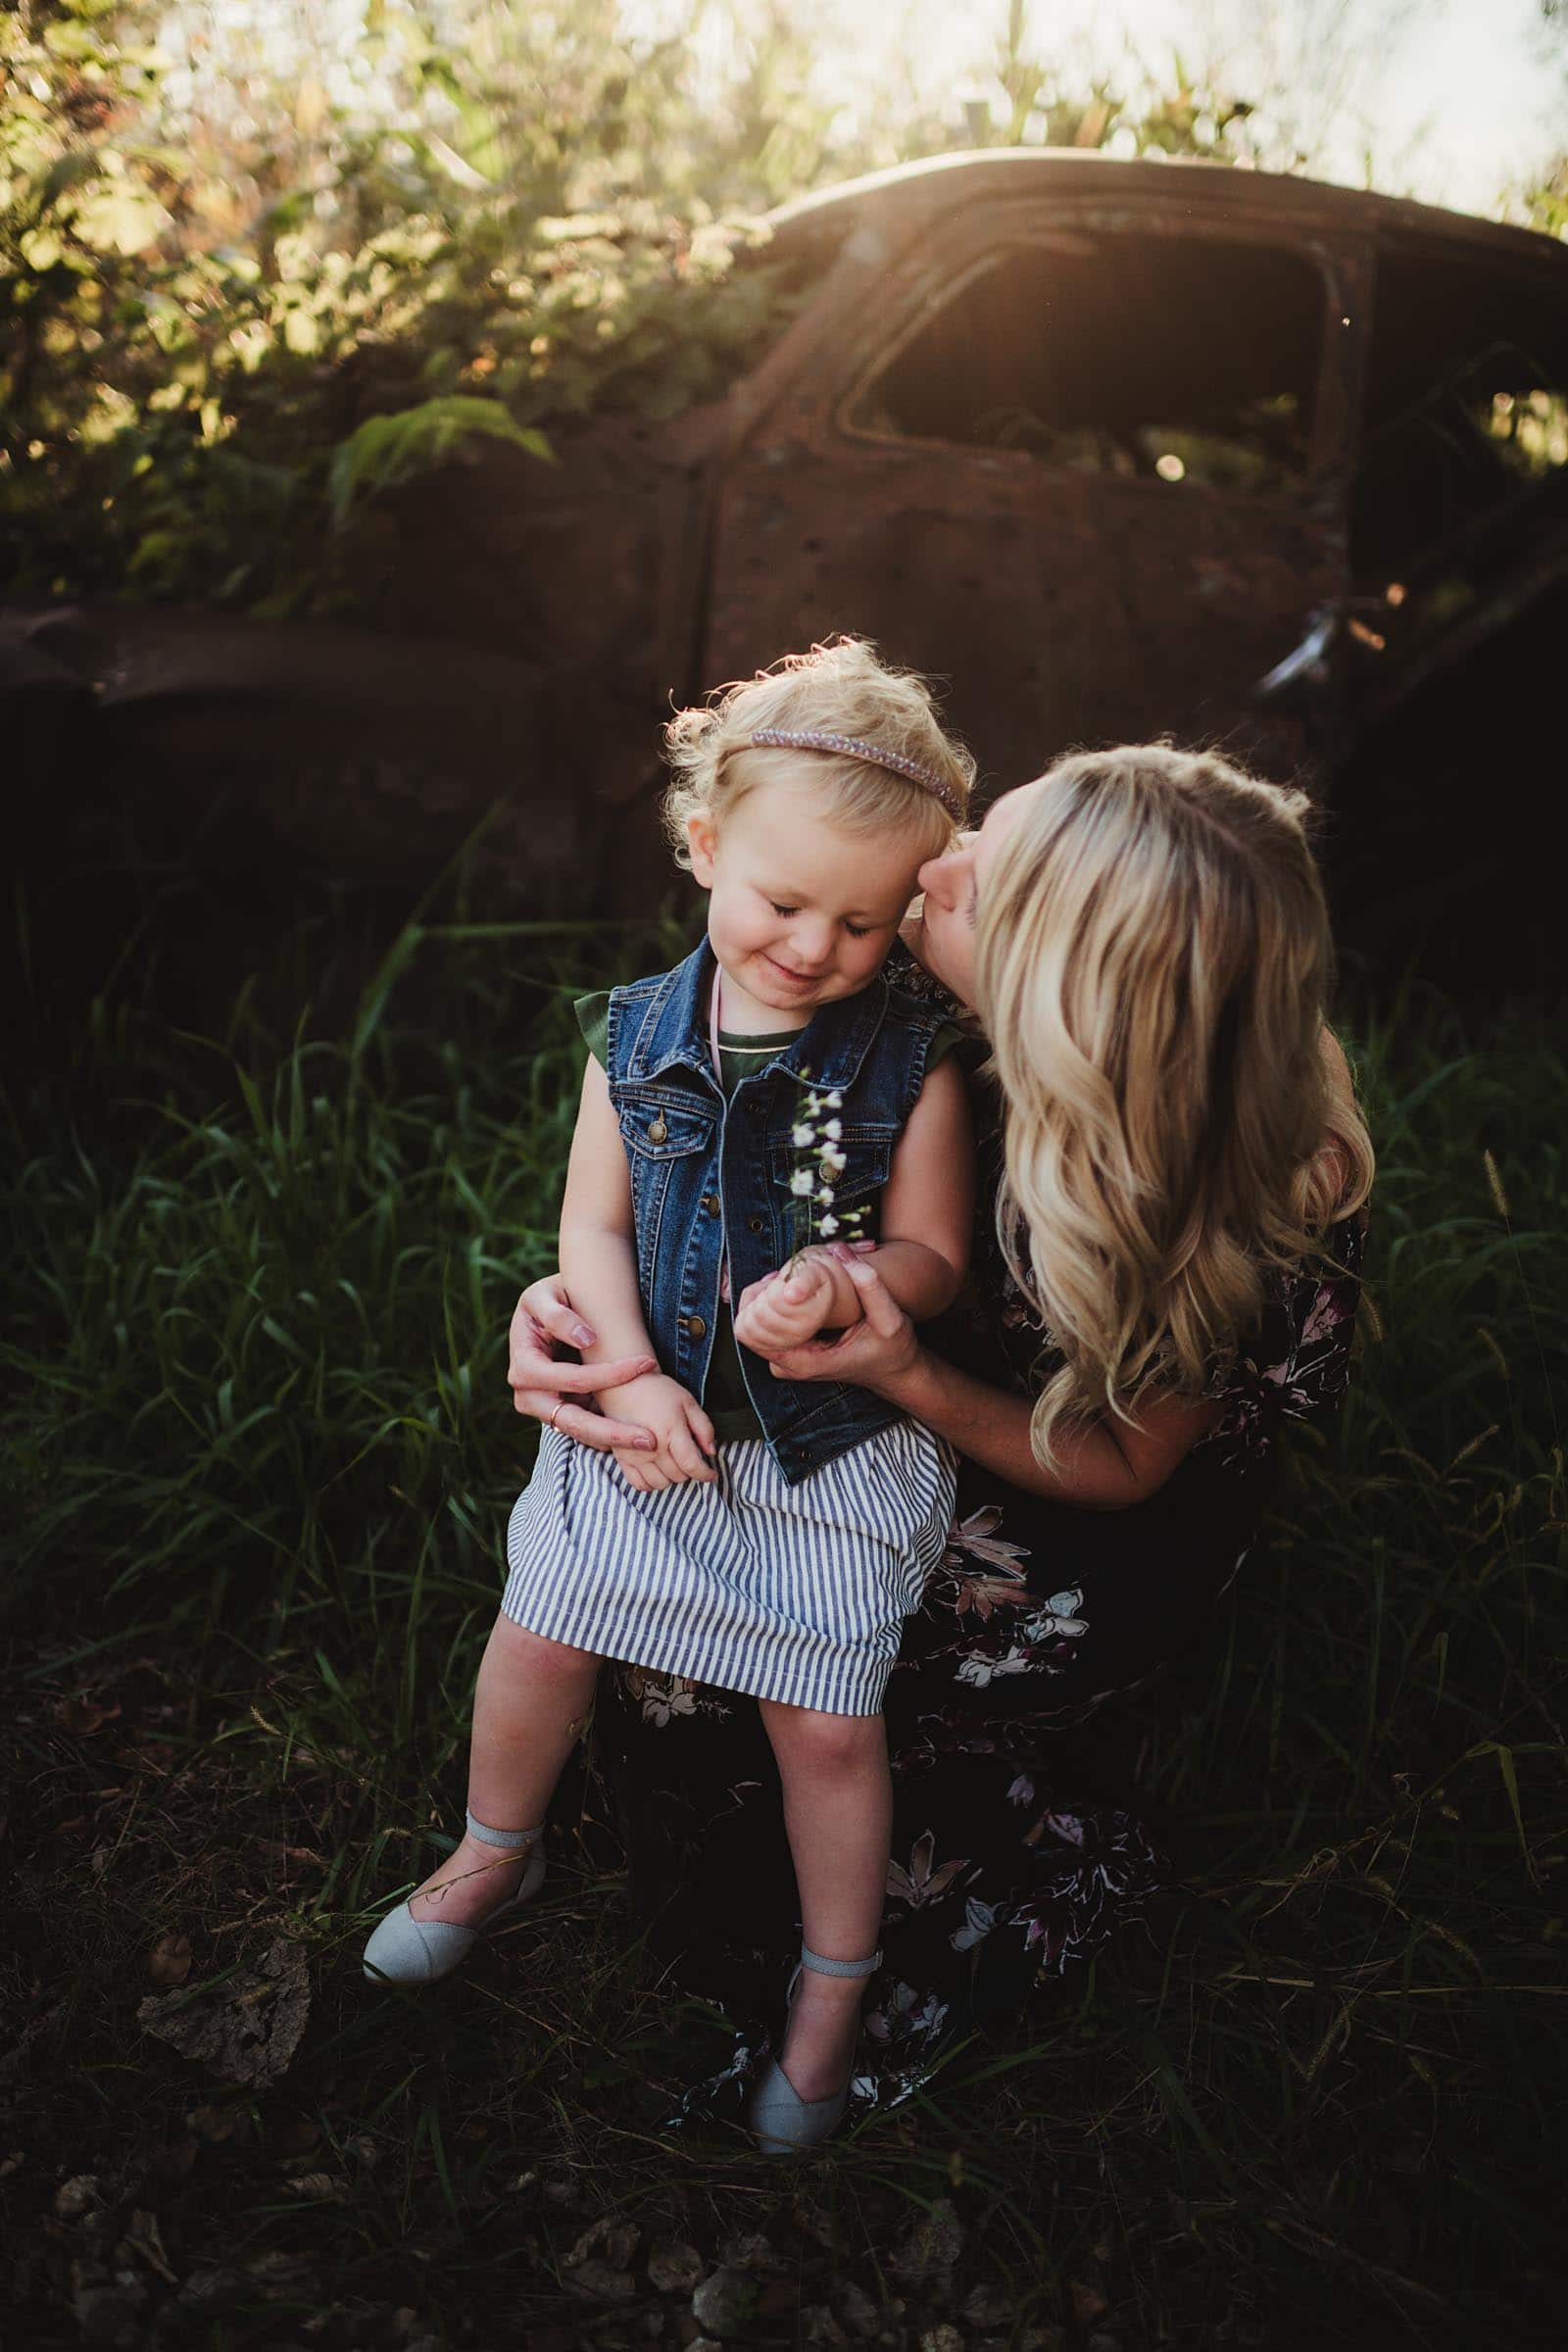 Mom Kissing Daughter on Cheek